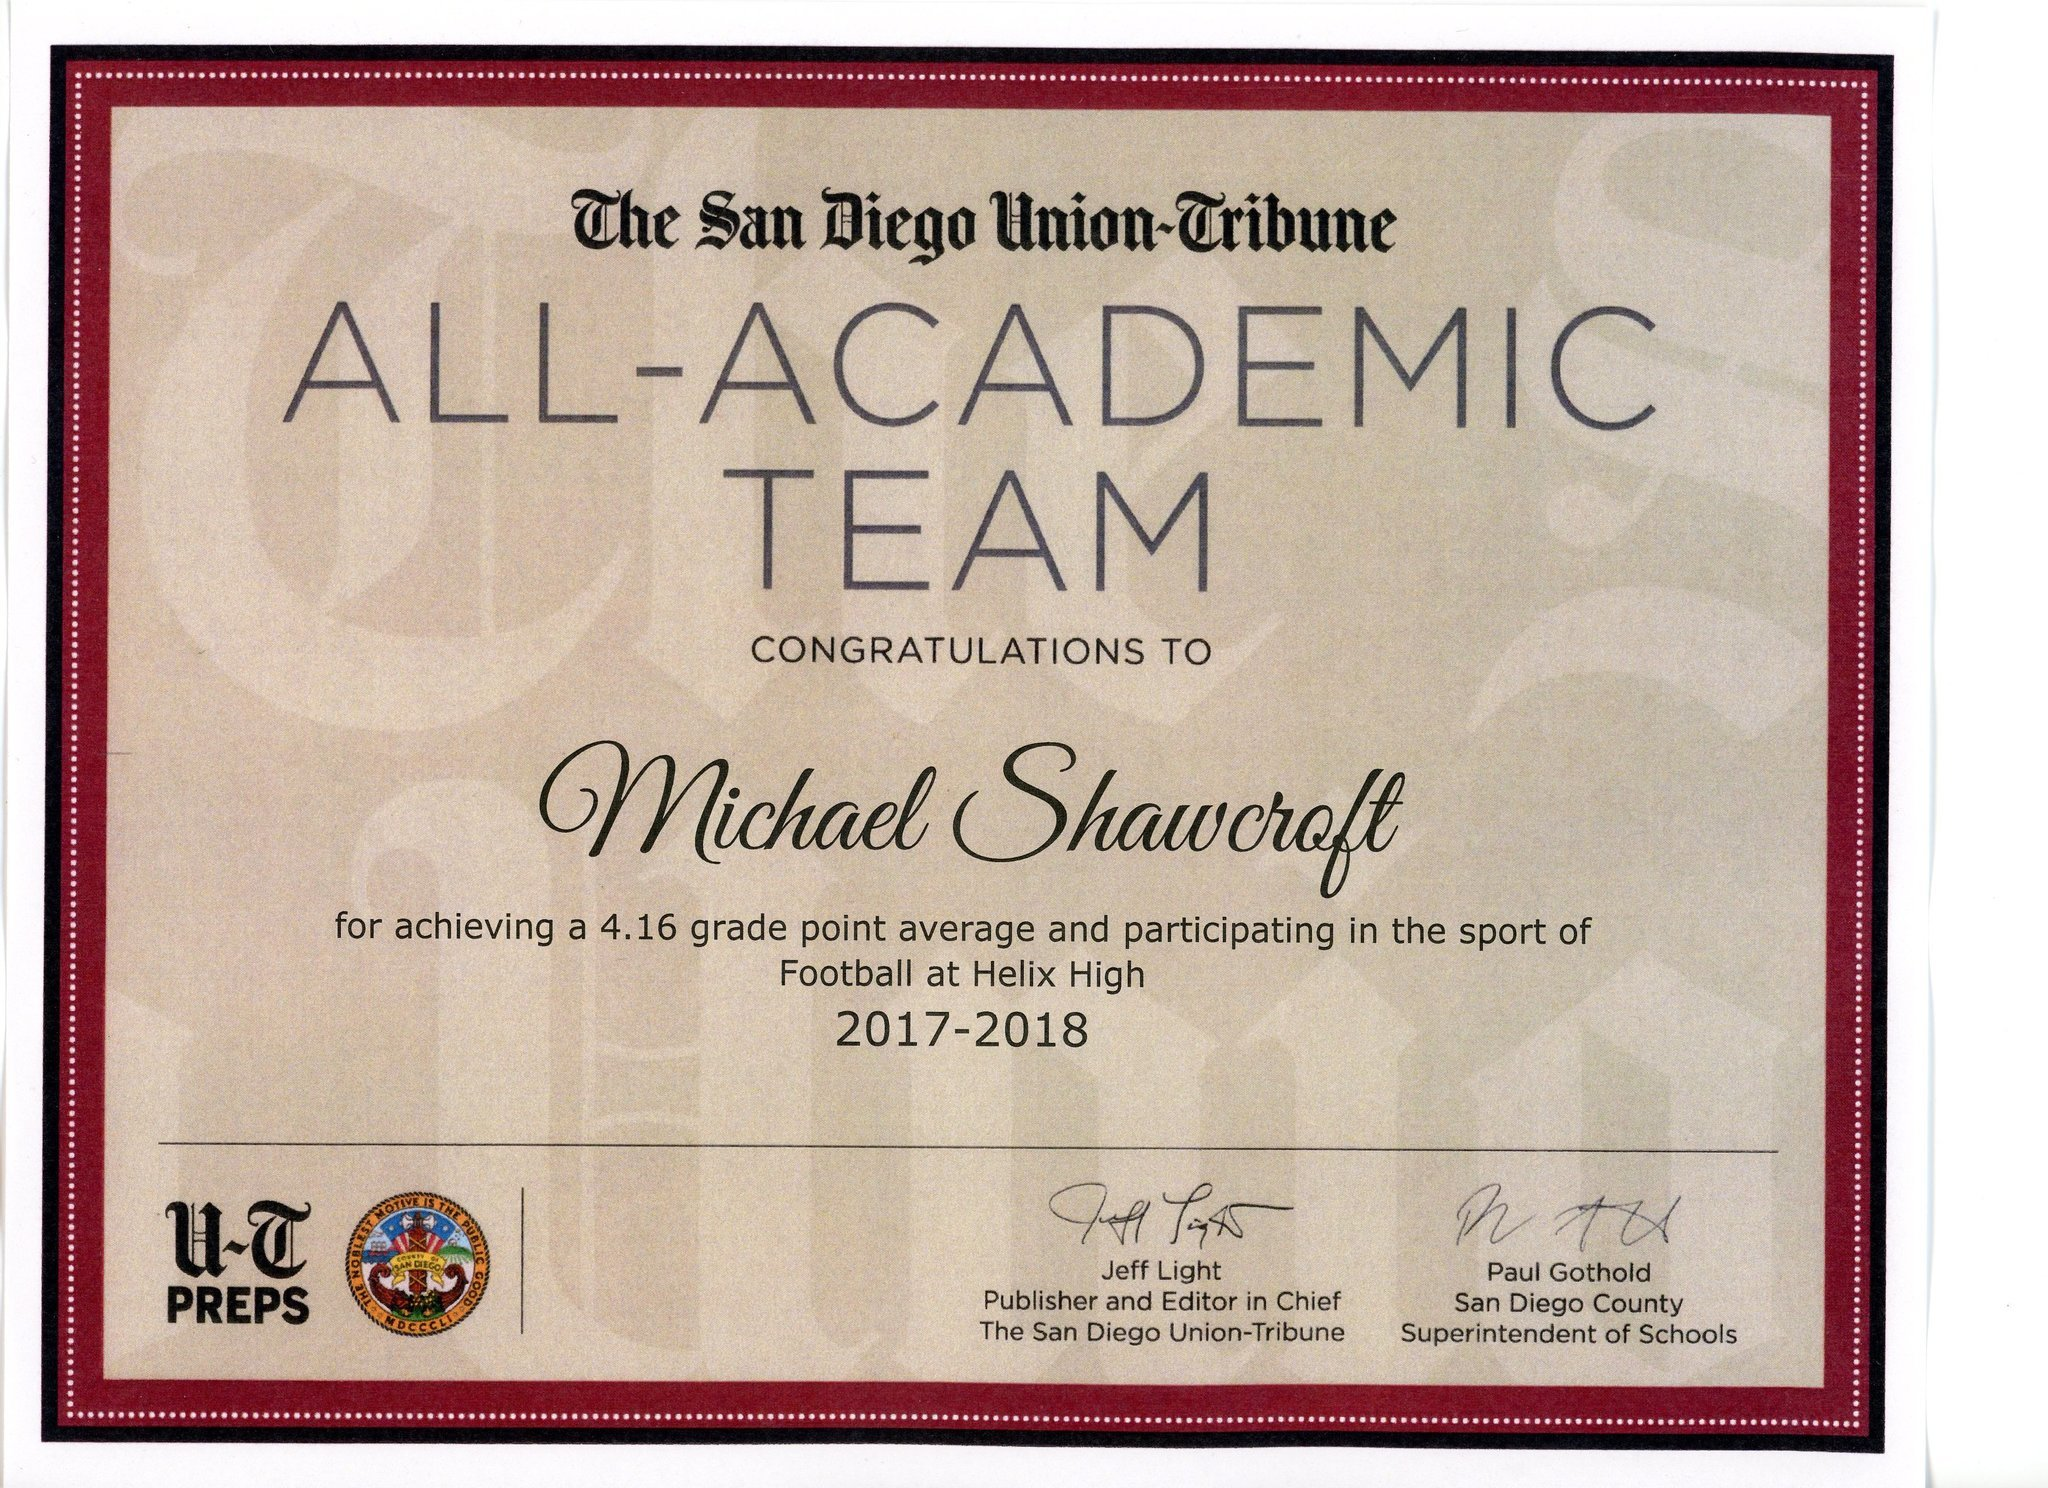 All-Academic Team certificate 2017-18